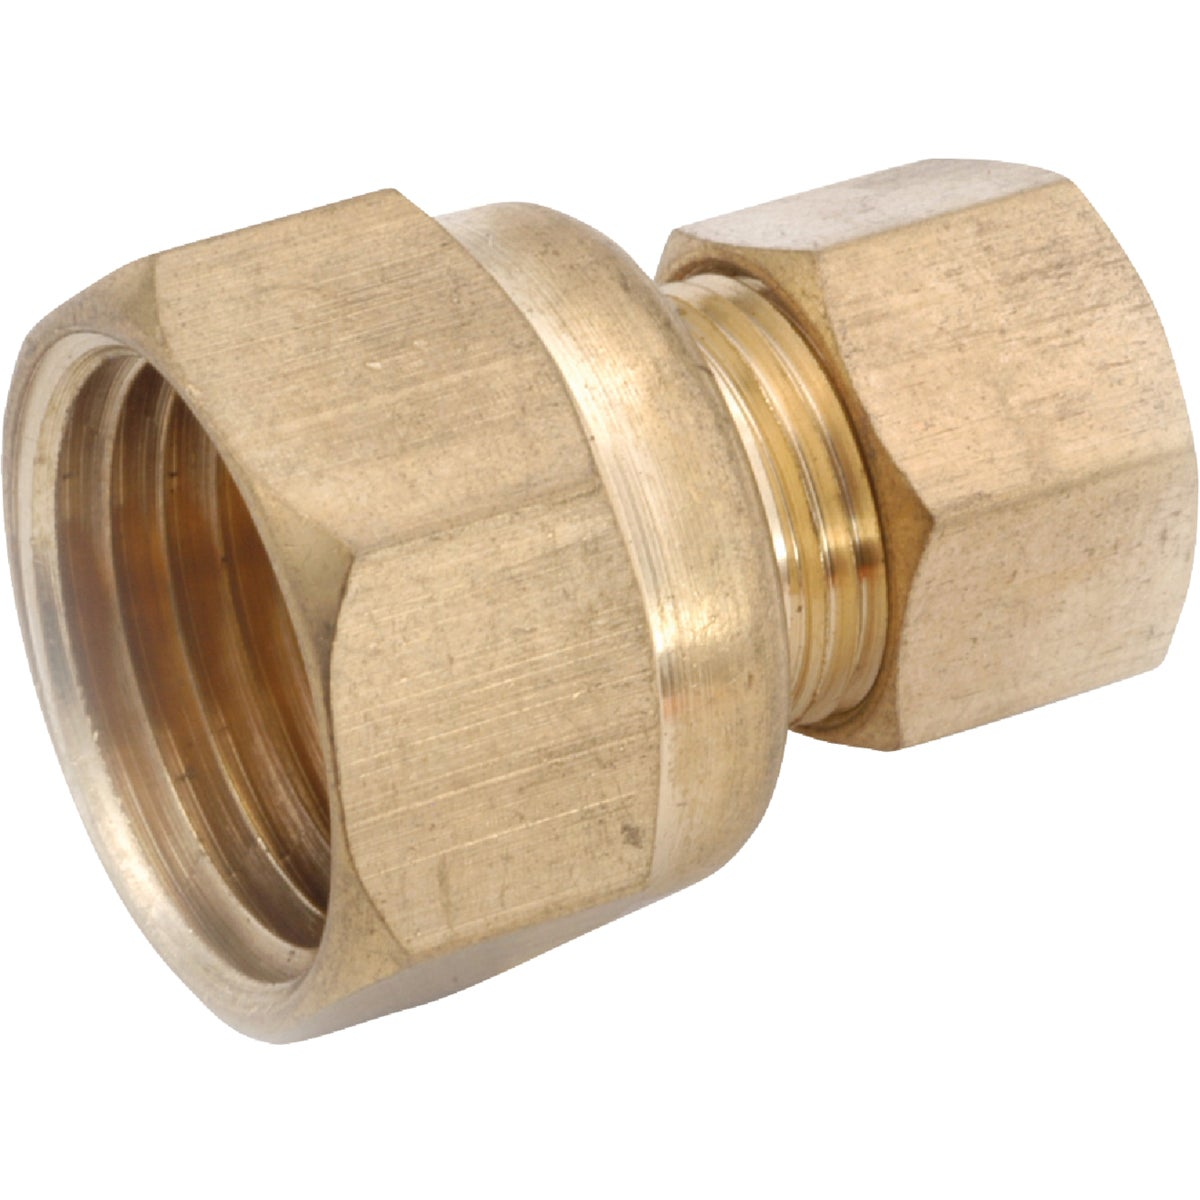 1/2X3/8 FEMALE COUPLING - 750066-0806 by Anderson Metals Corp